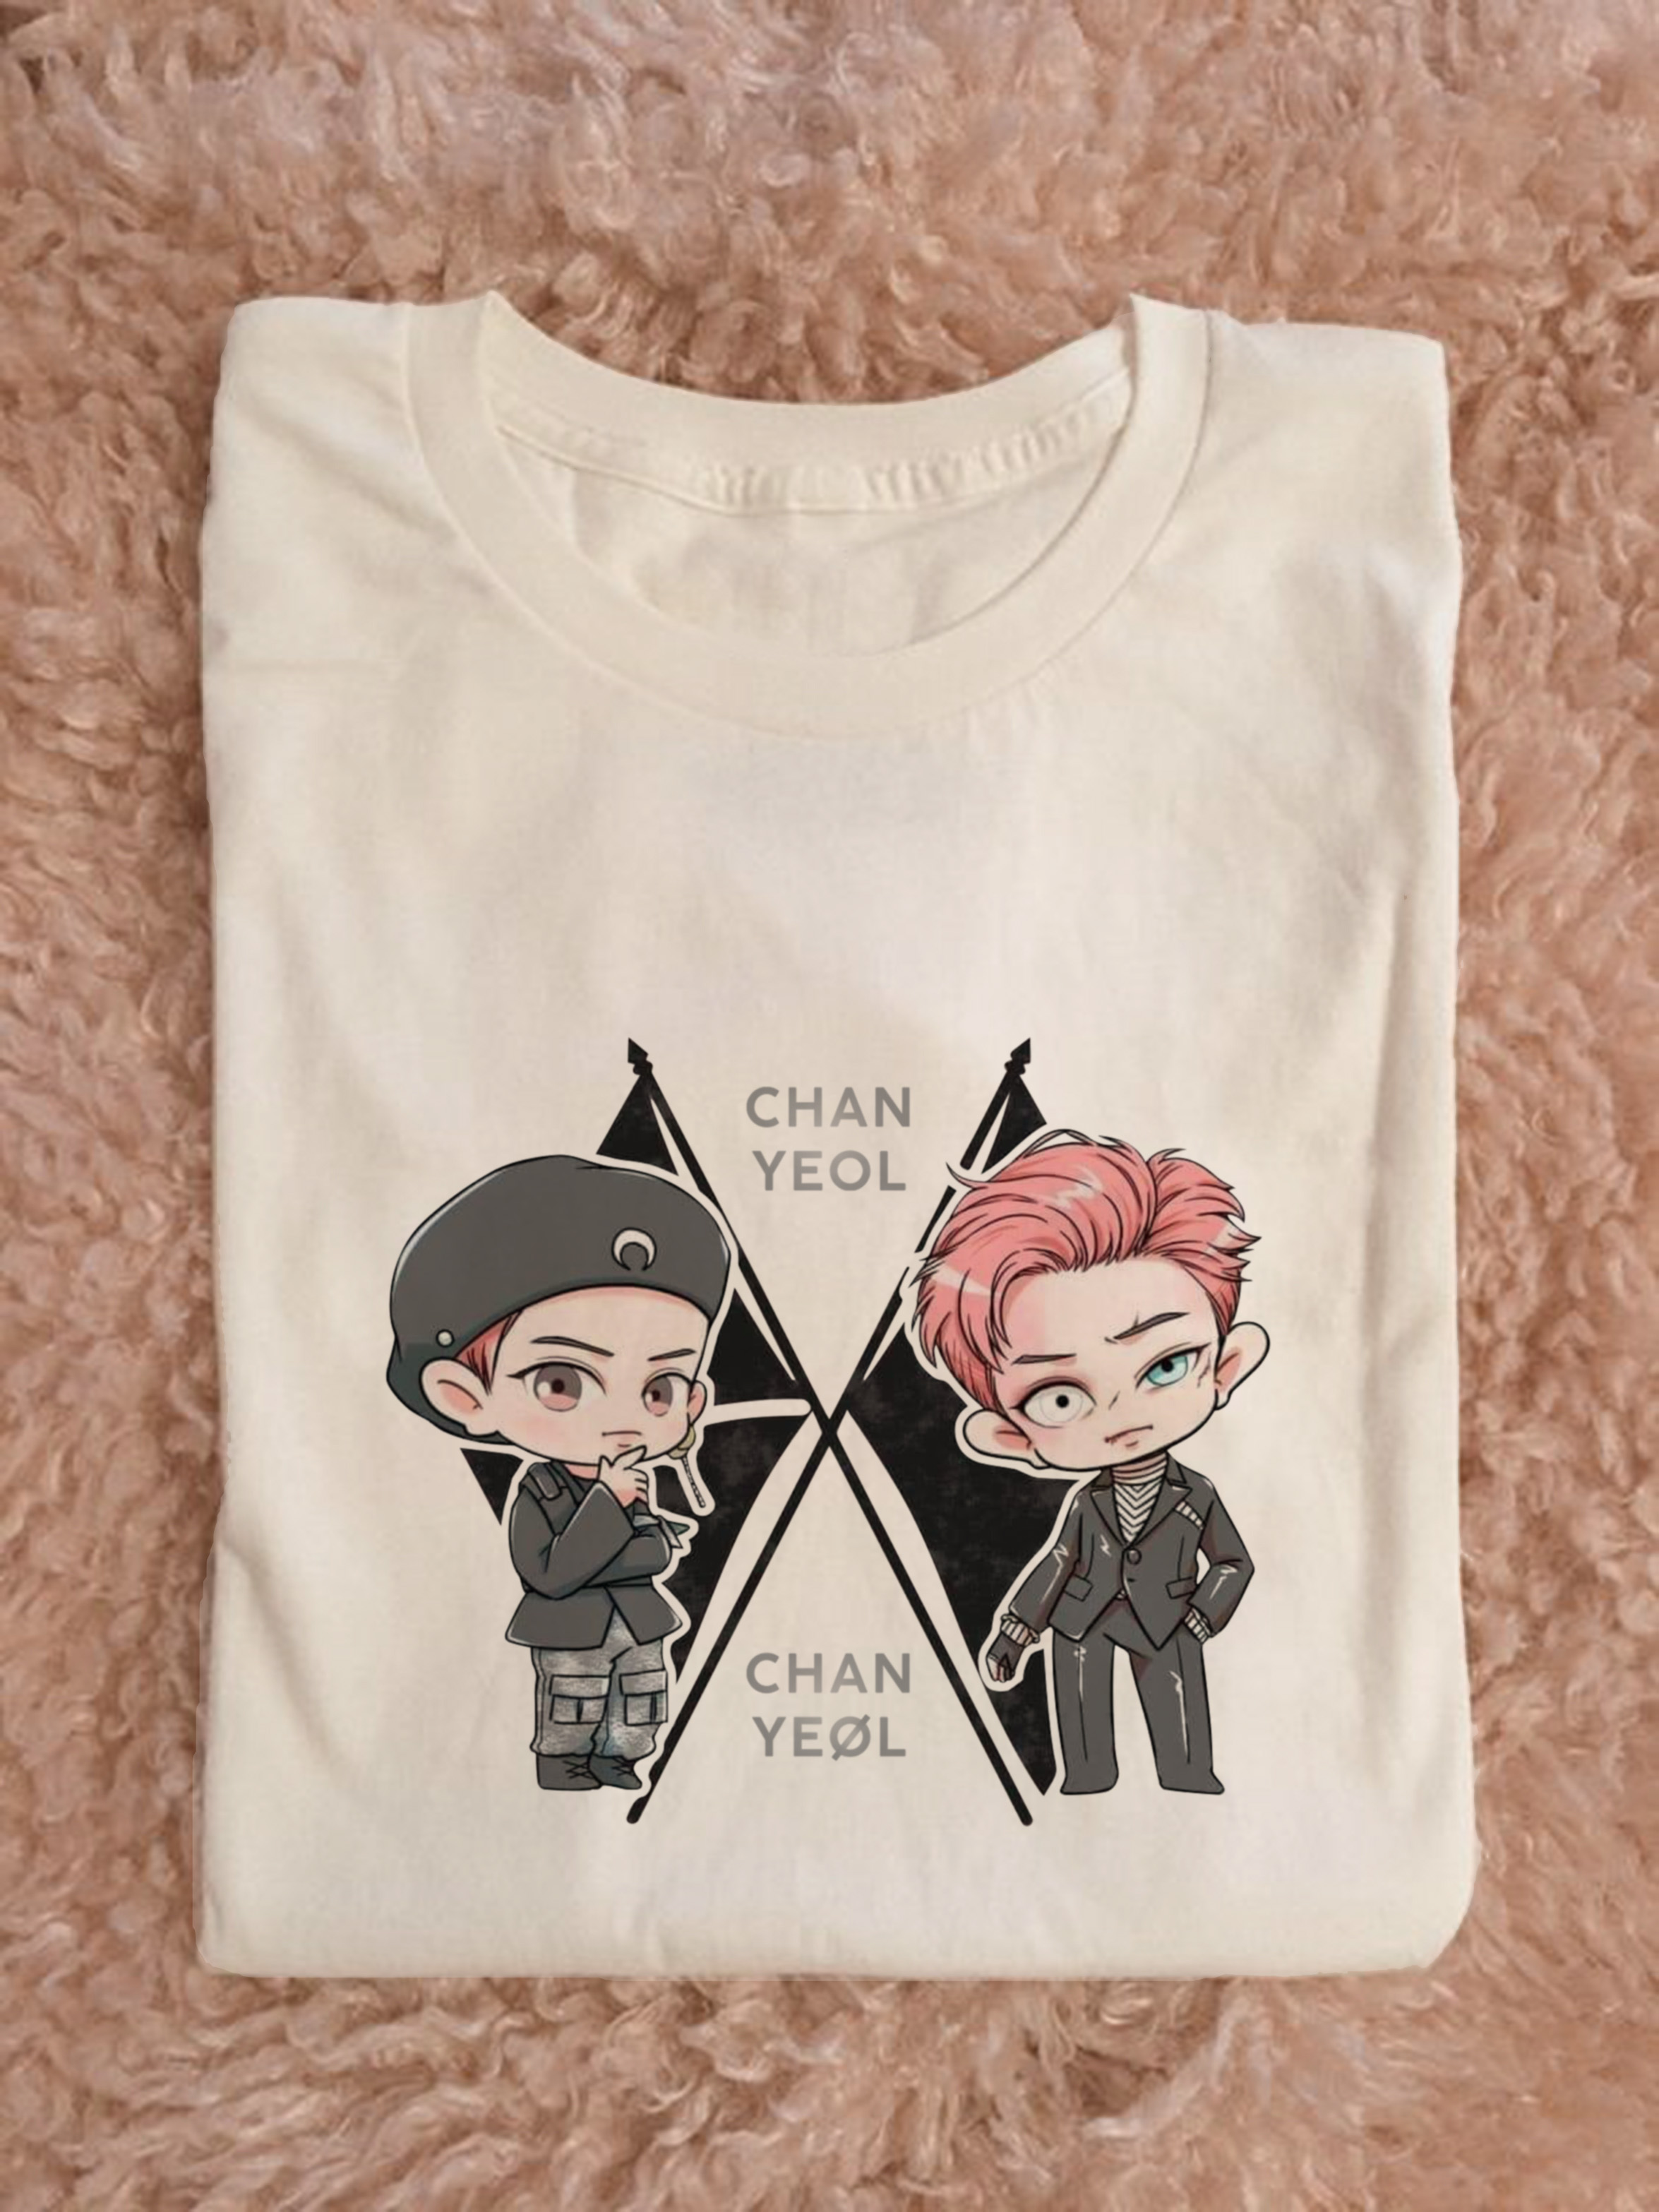 special edition!! kaos exo obsession chanyeol chibi